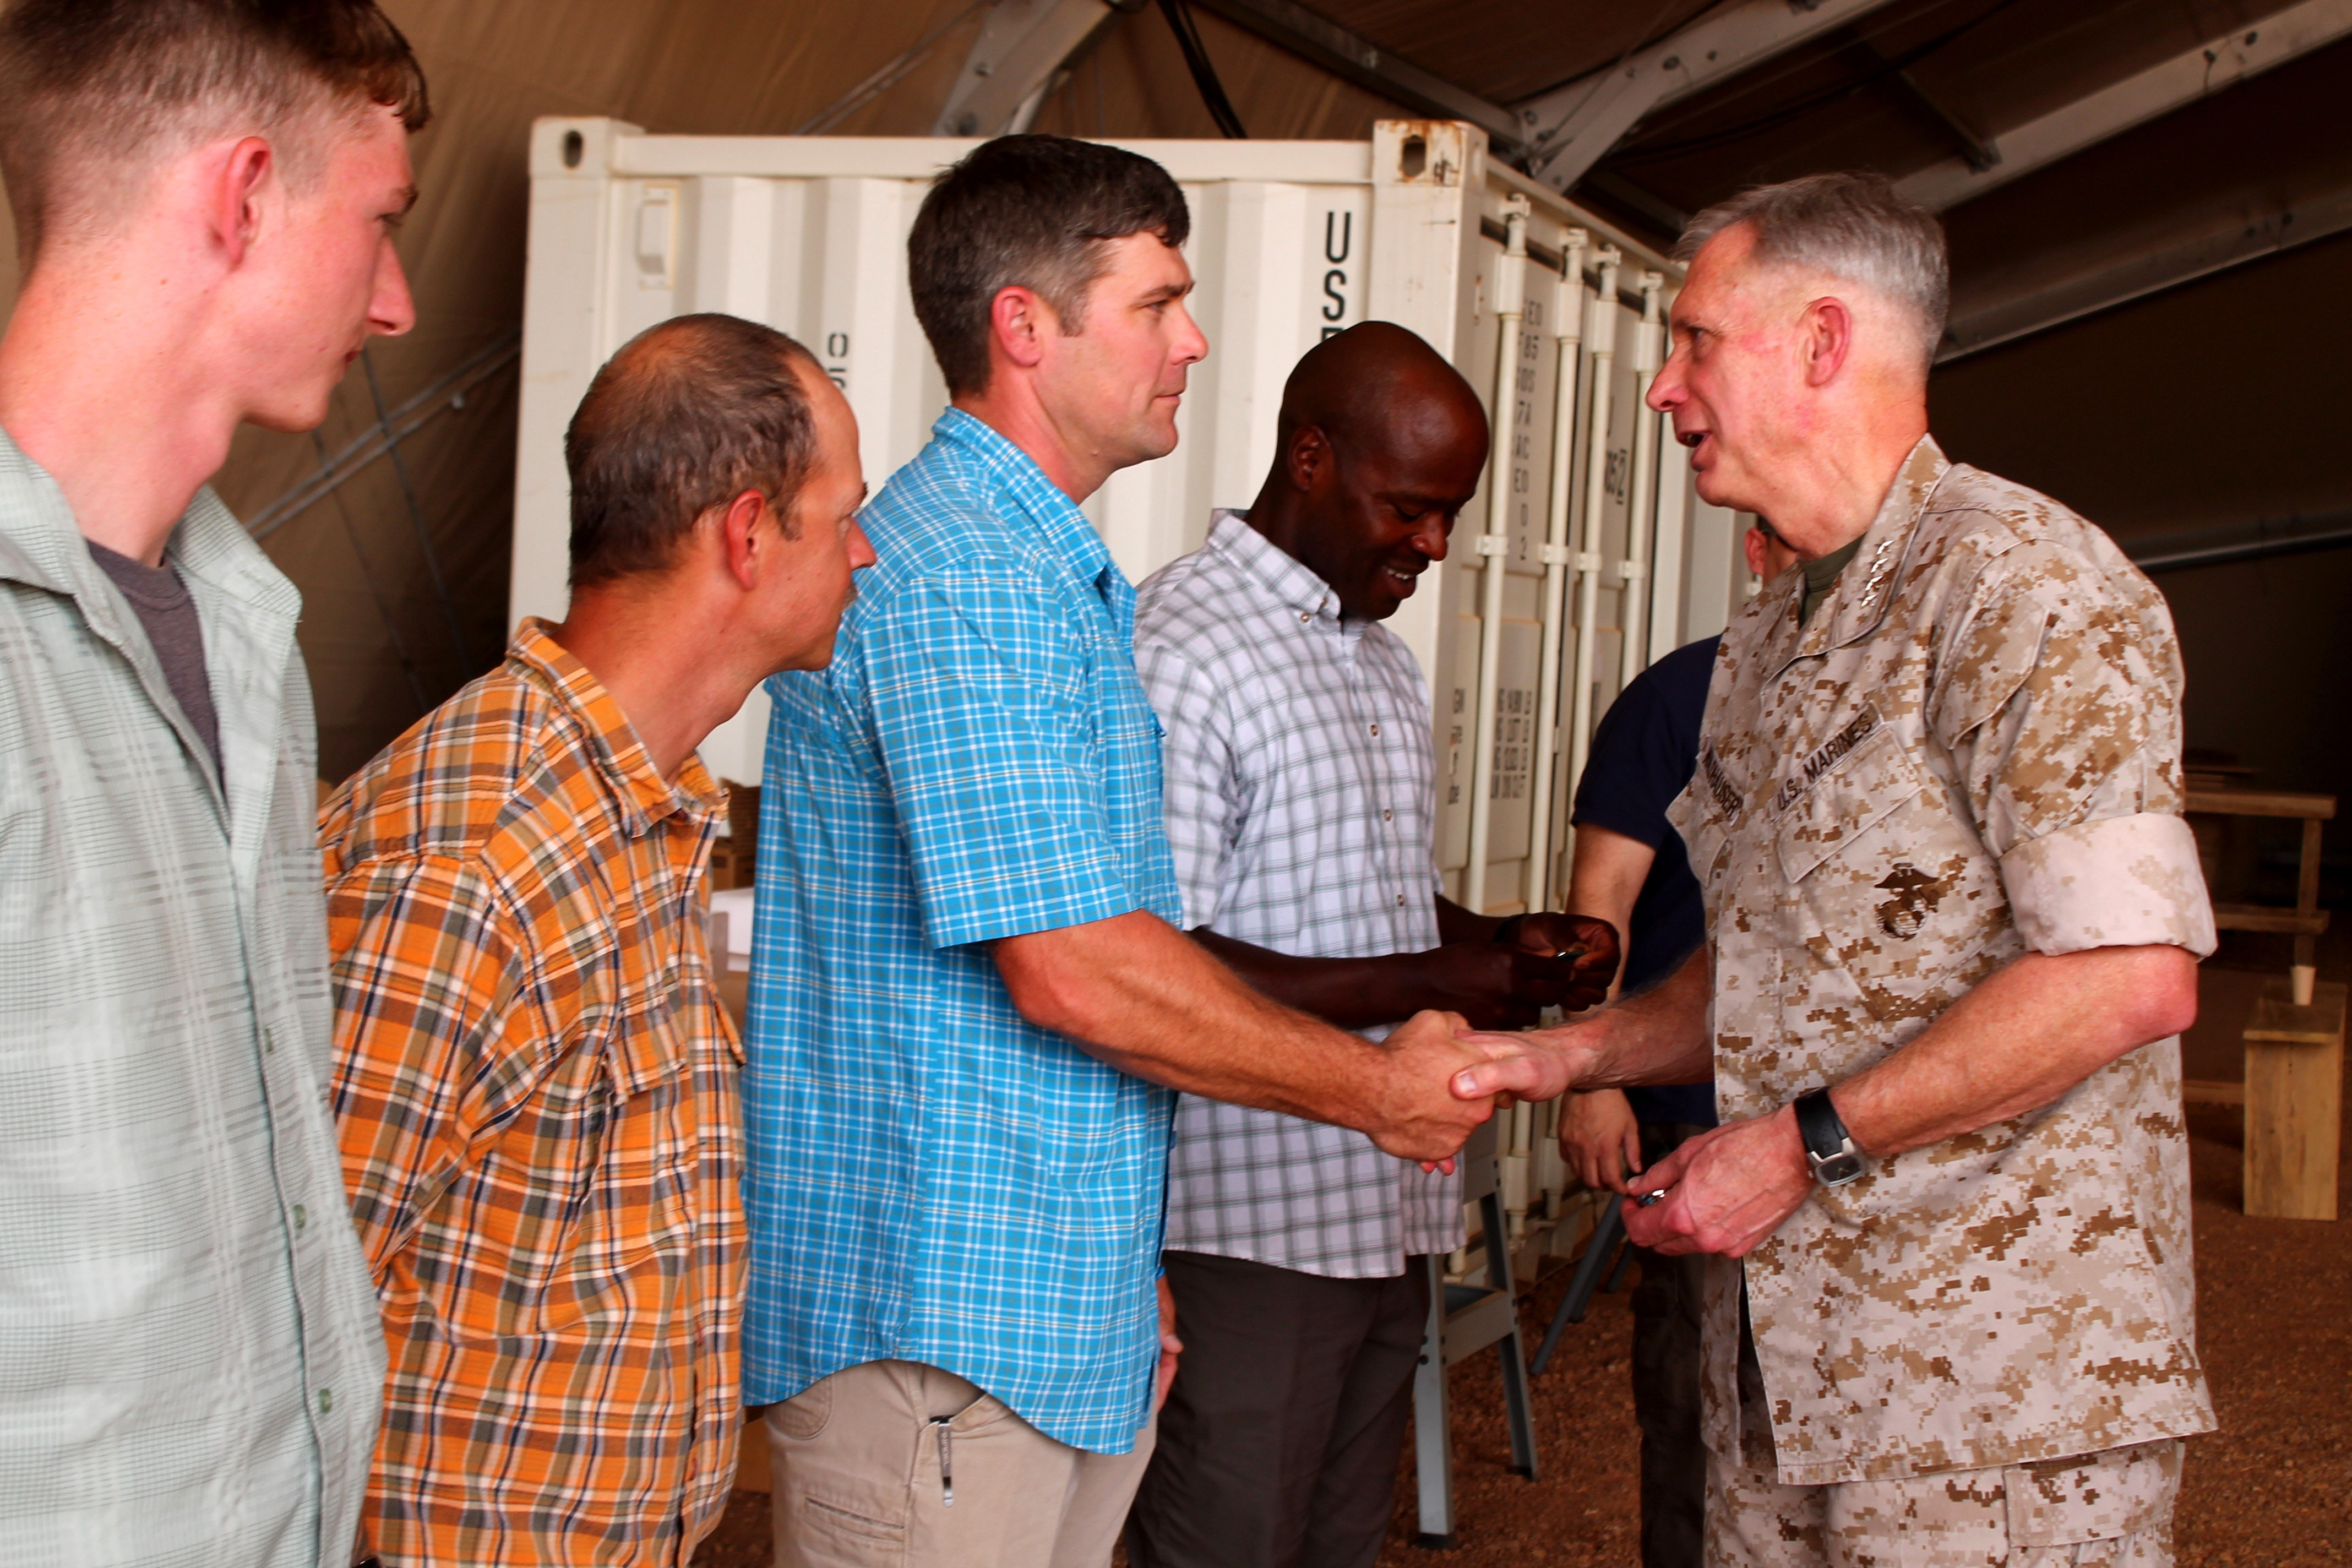 Gen. Thomas Waldhauser, Commander, U.S. Africa Command, presented official command coins to several U.S. civil affairs troops currently deployed to Niger's Air Base 201 on Nov. 1, 2016. (Photo by Samantha Reho, U.S. Africa Command Public Affairs/Released)